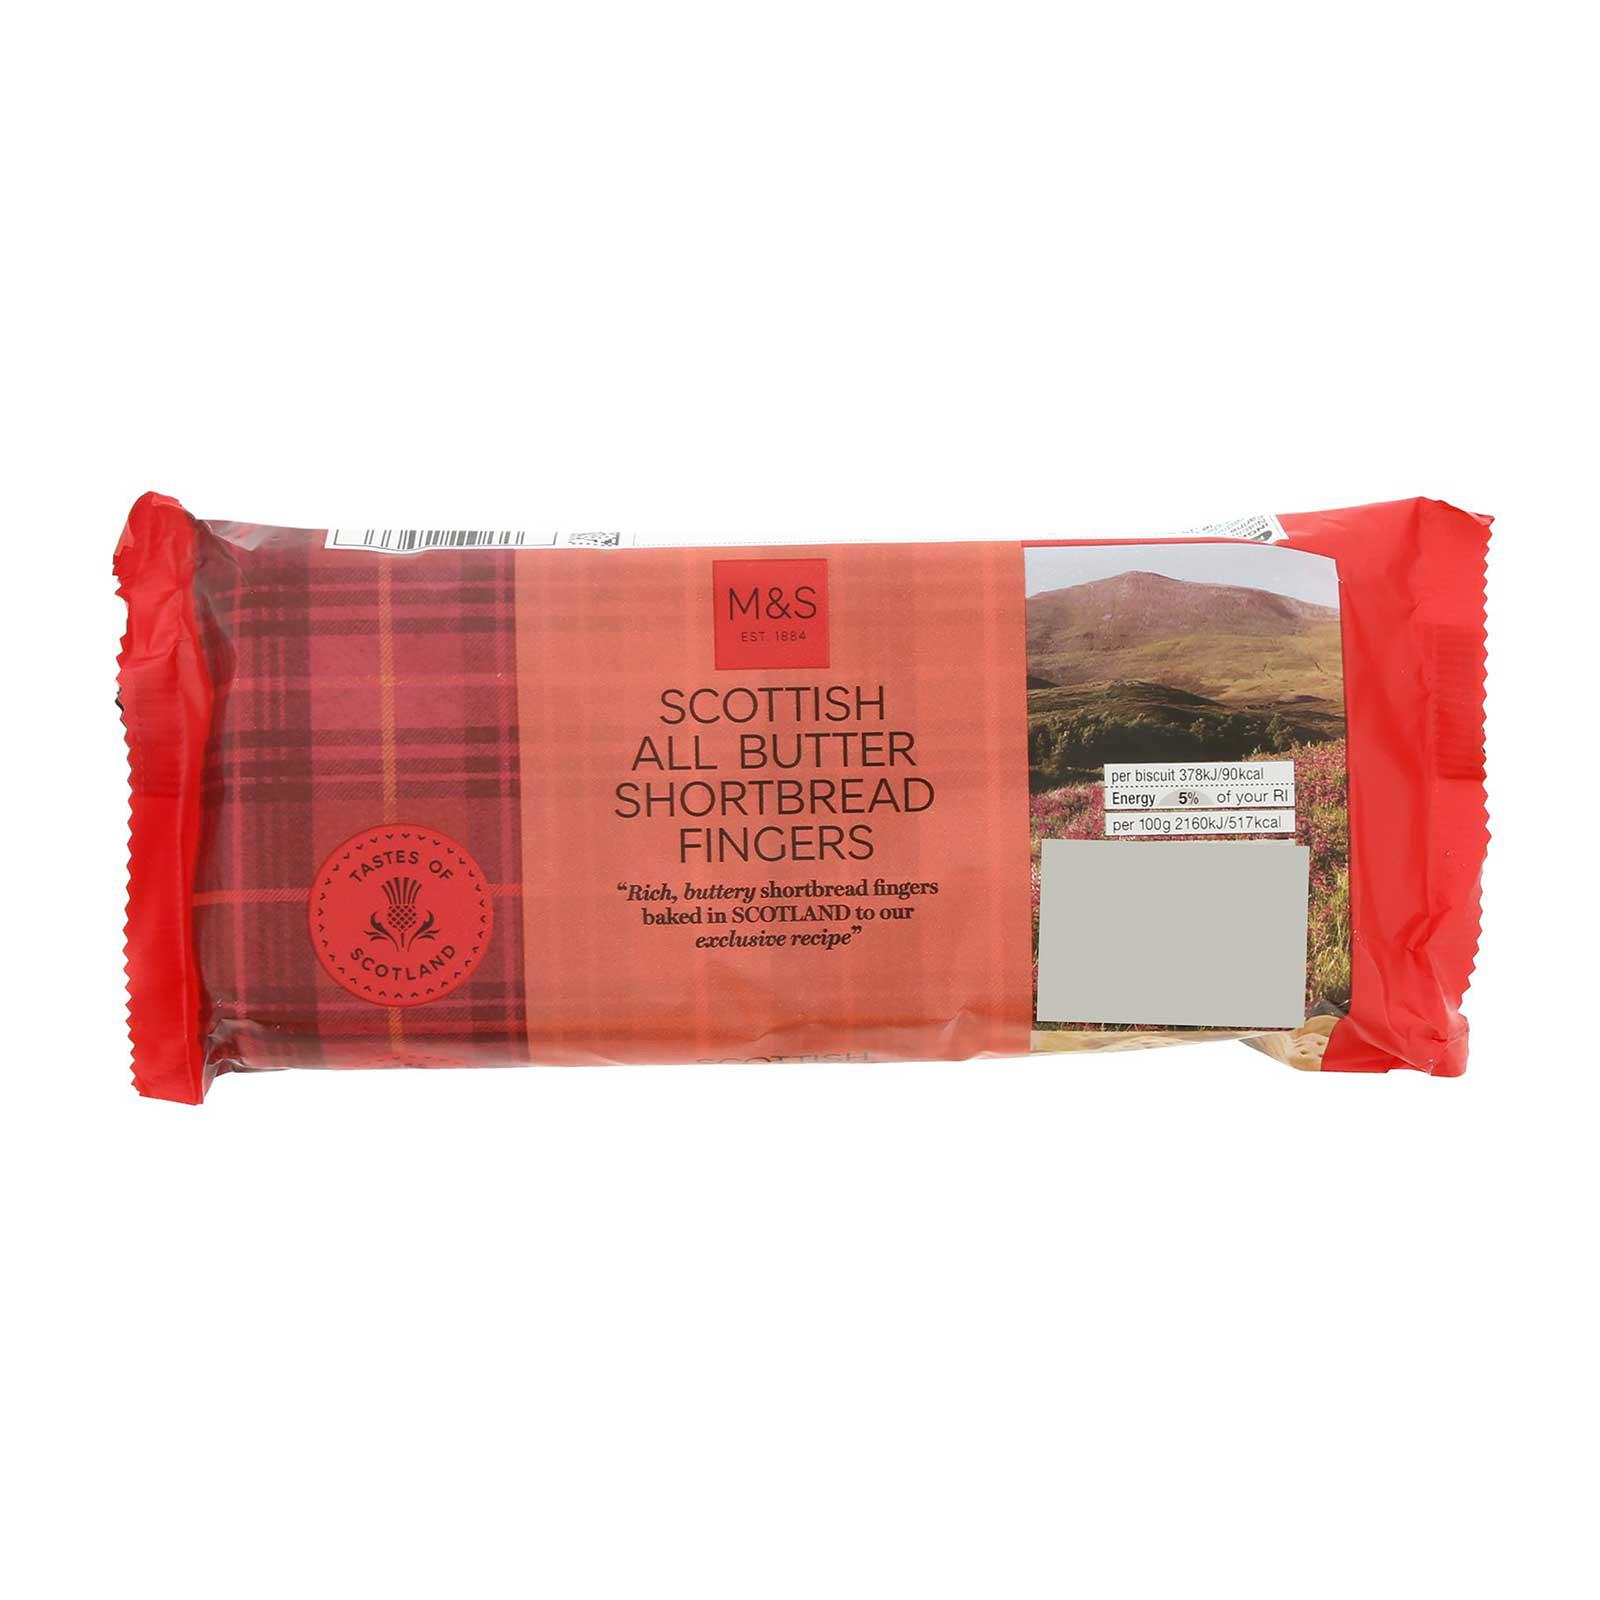 Marks & Spencer All Butter Scottish Shortbread Fingers